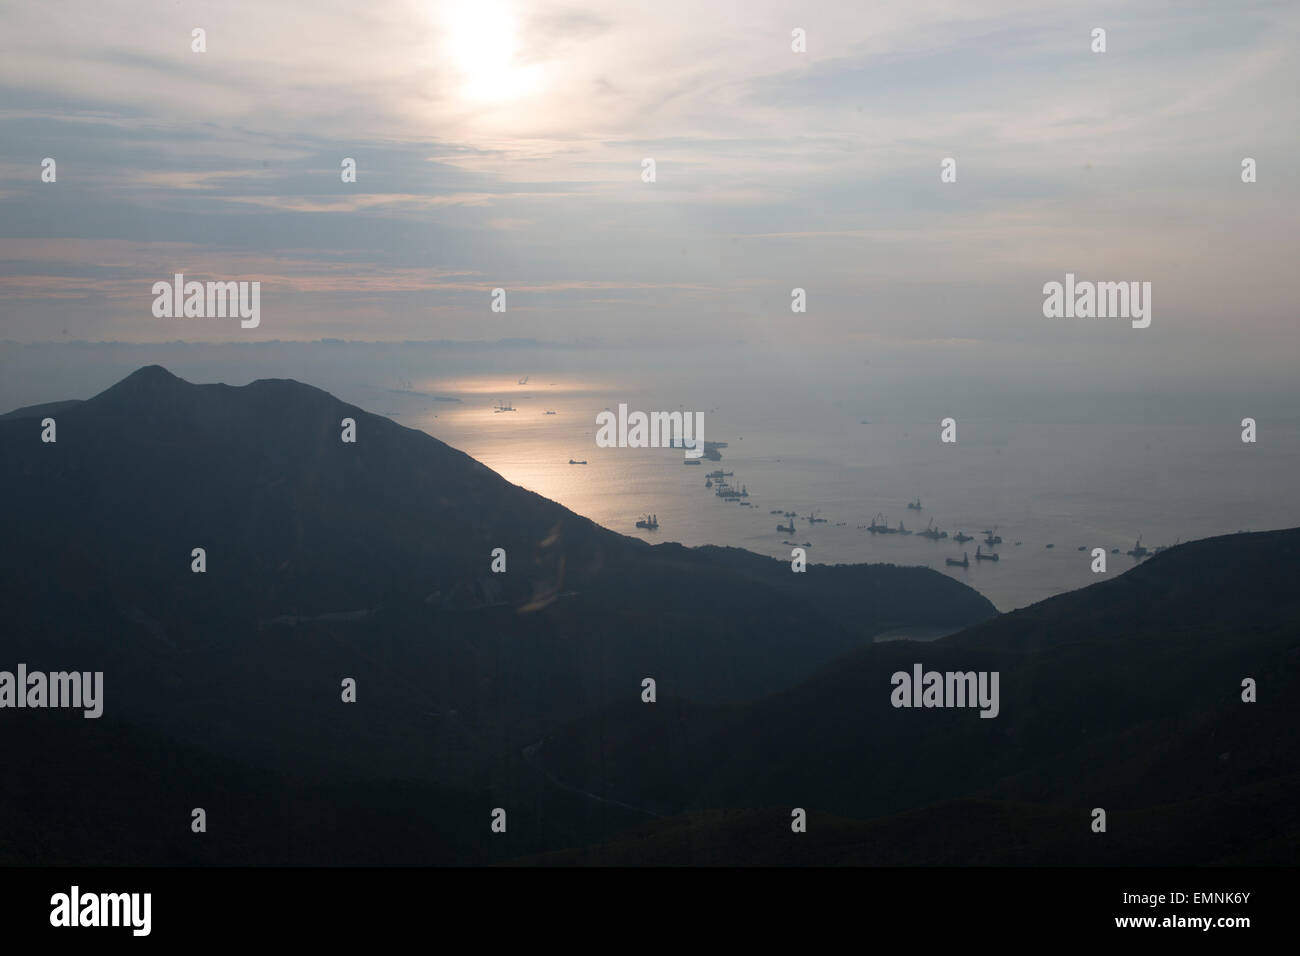 Sun rays and clouds seen from the Lantau island in Hong Kong - Stock Image